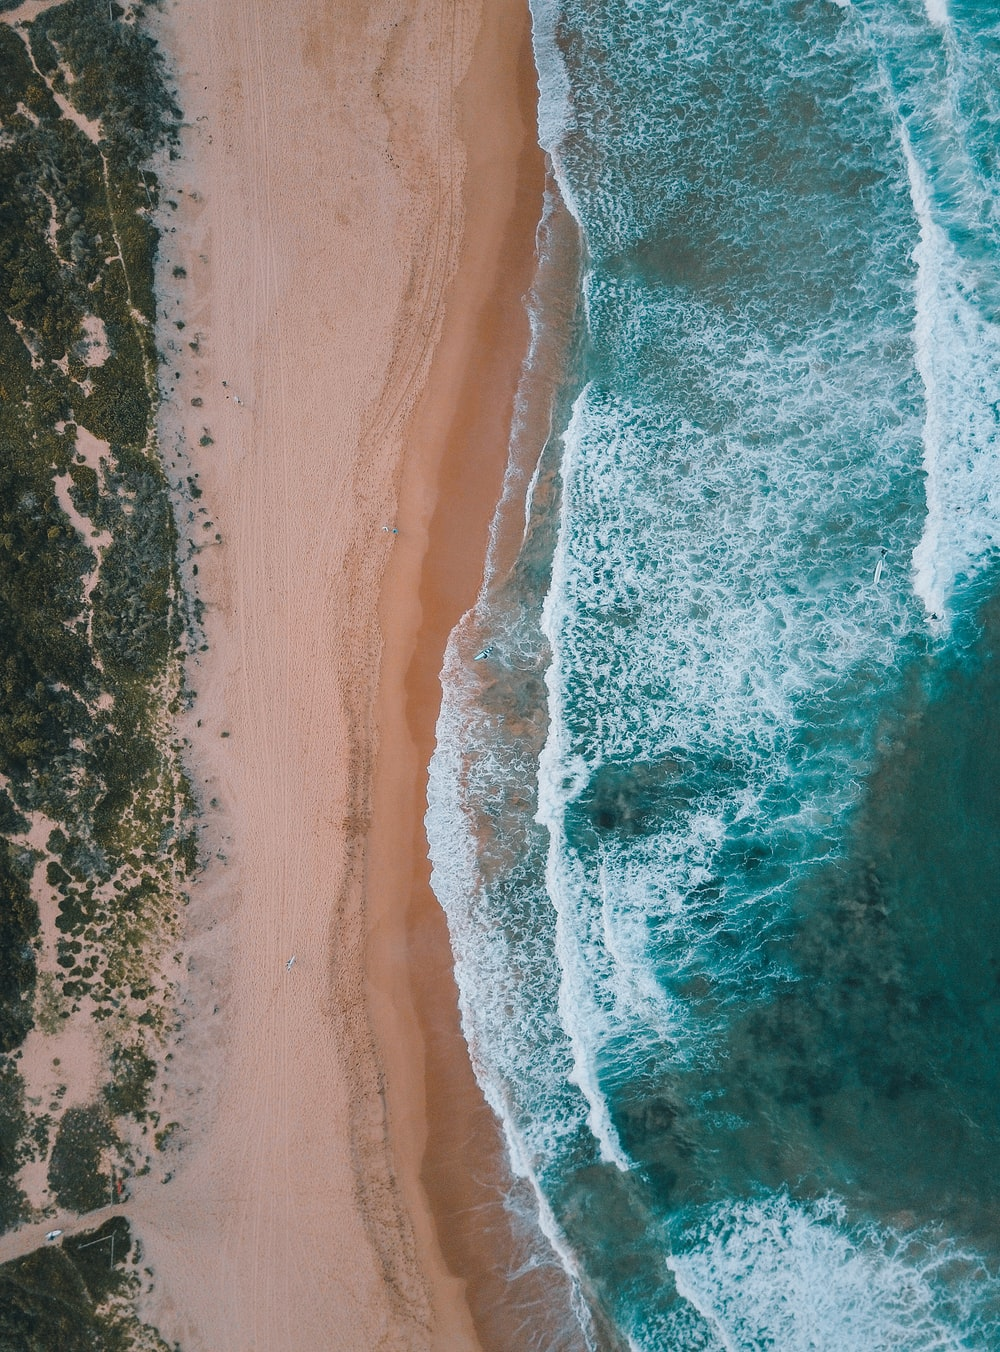 aerial view of beach with waves